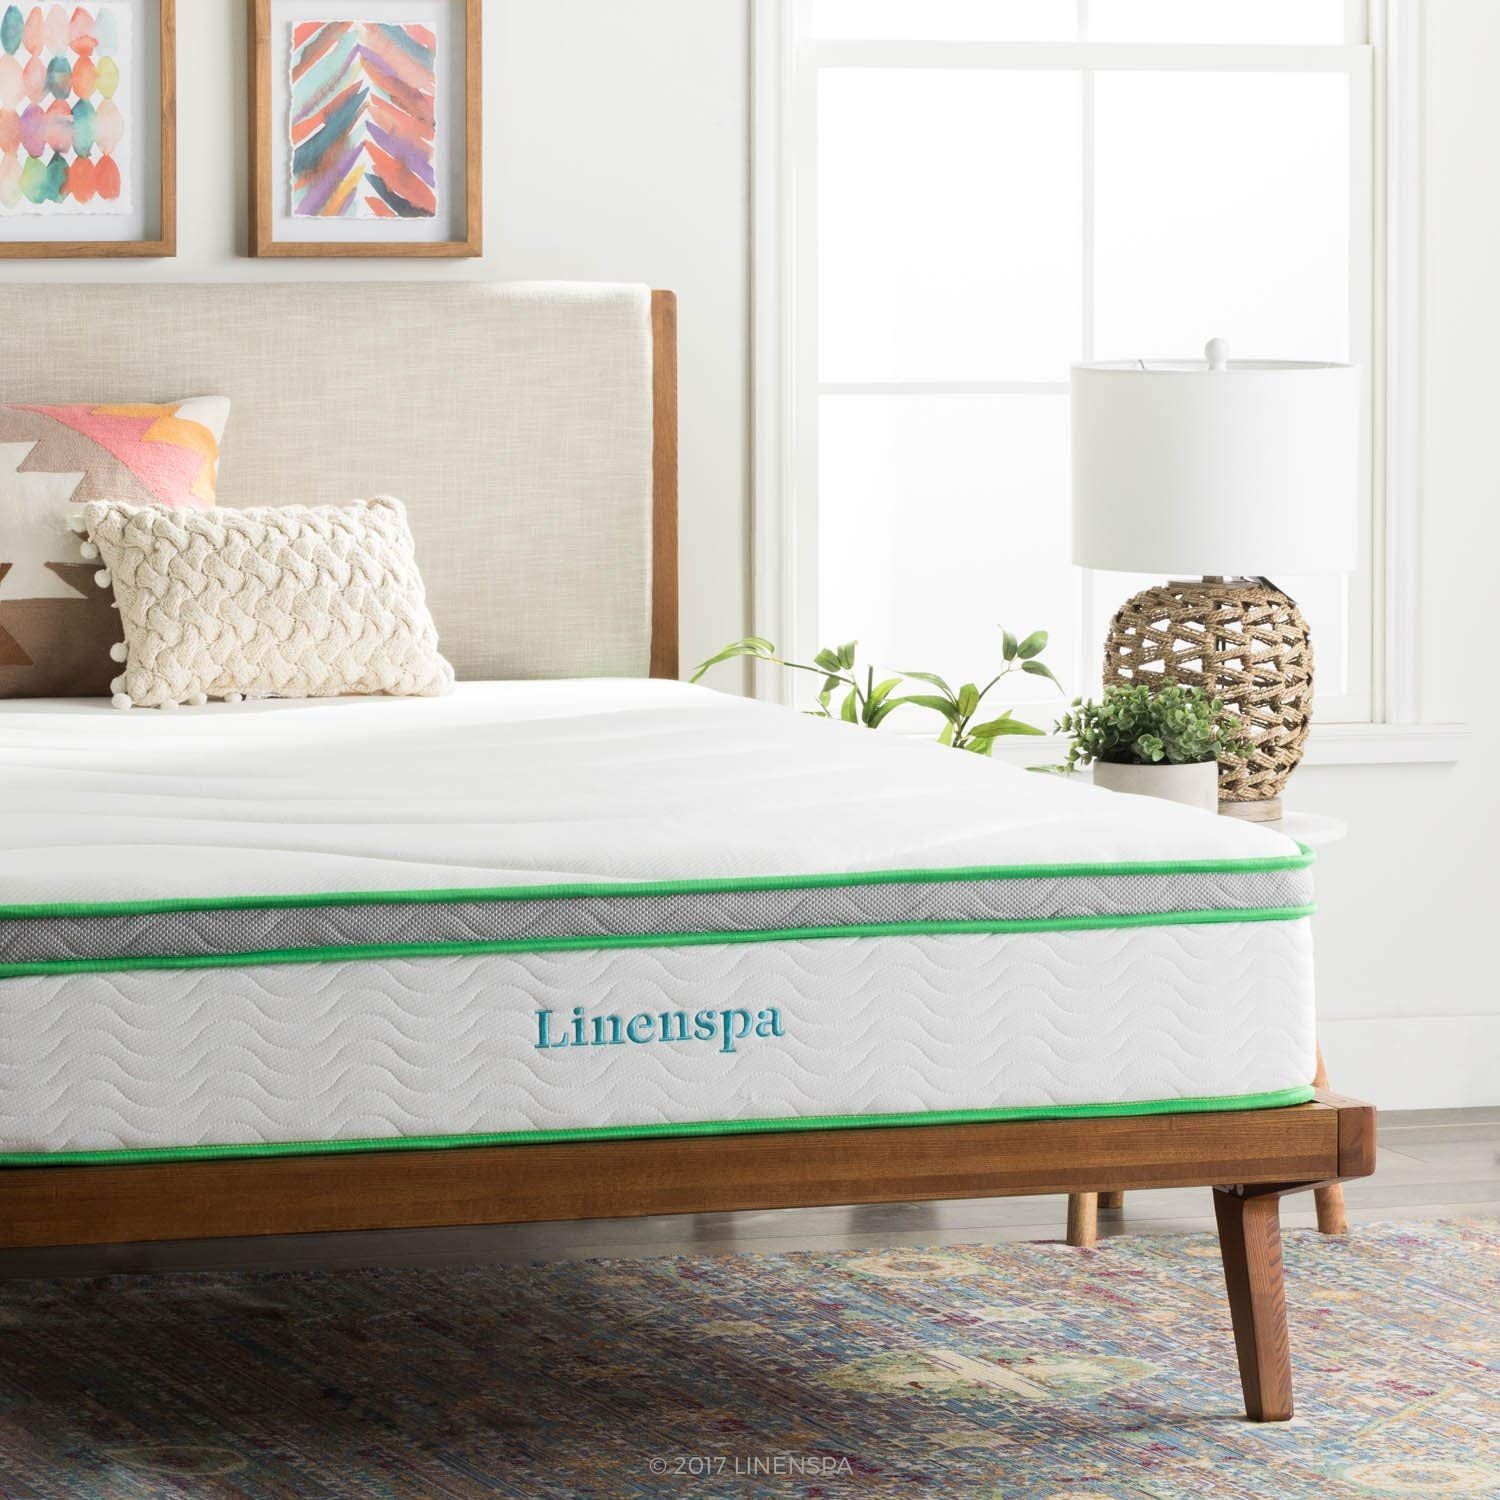 Linenspa best hybrid mattress reviews by www.snoremagazine.com